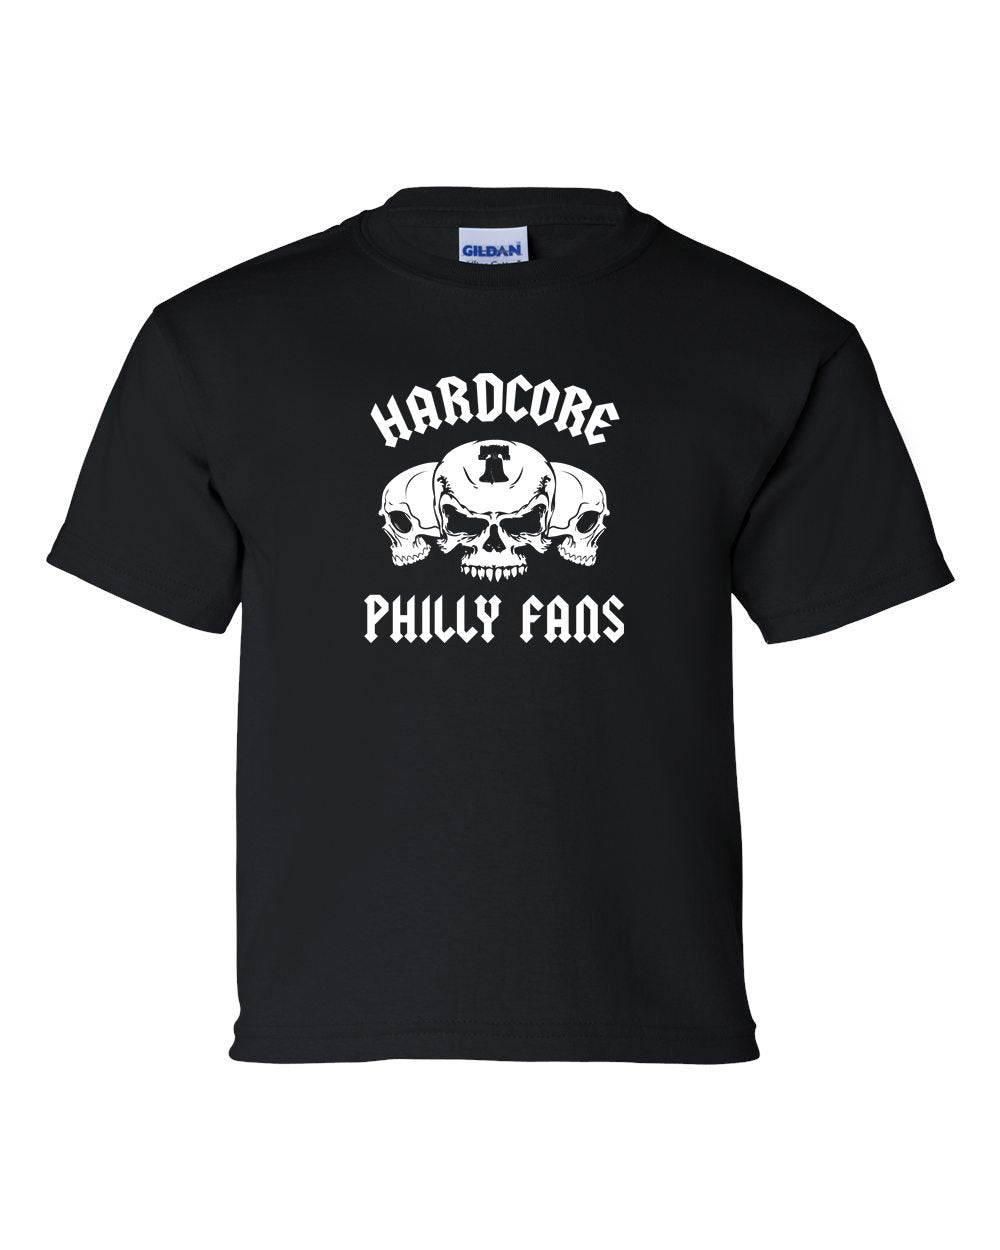 Hardcore Philly Fans KIDS T-Shirt